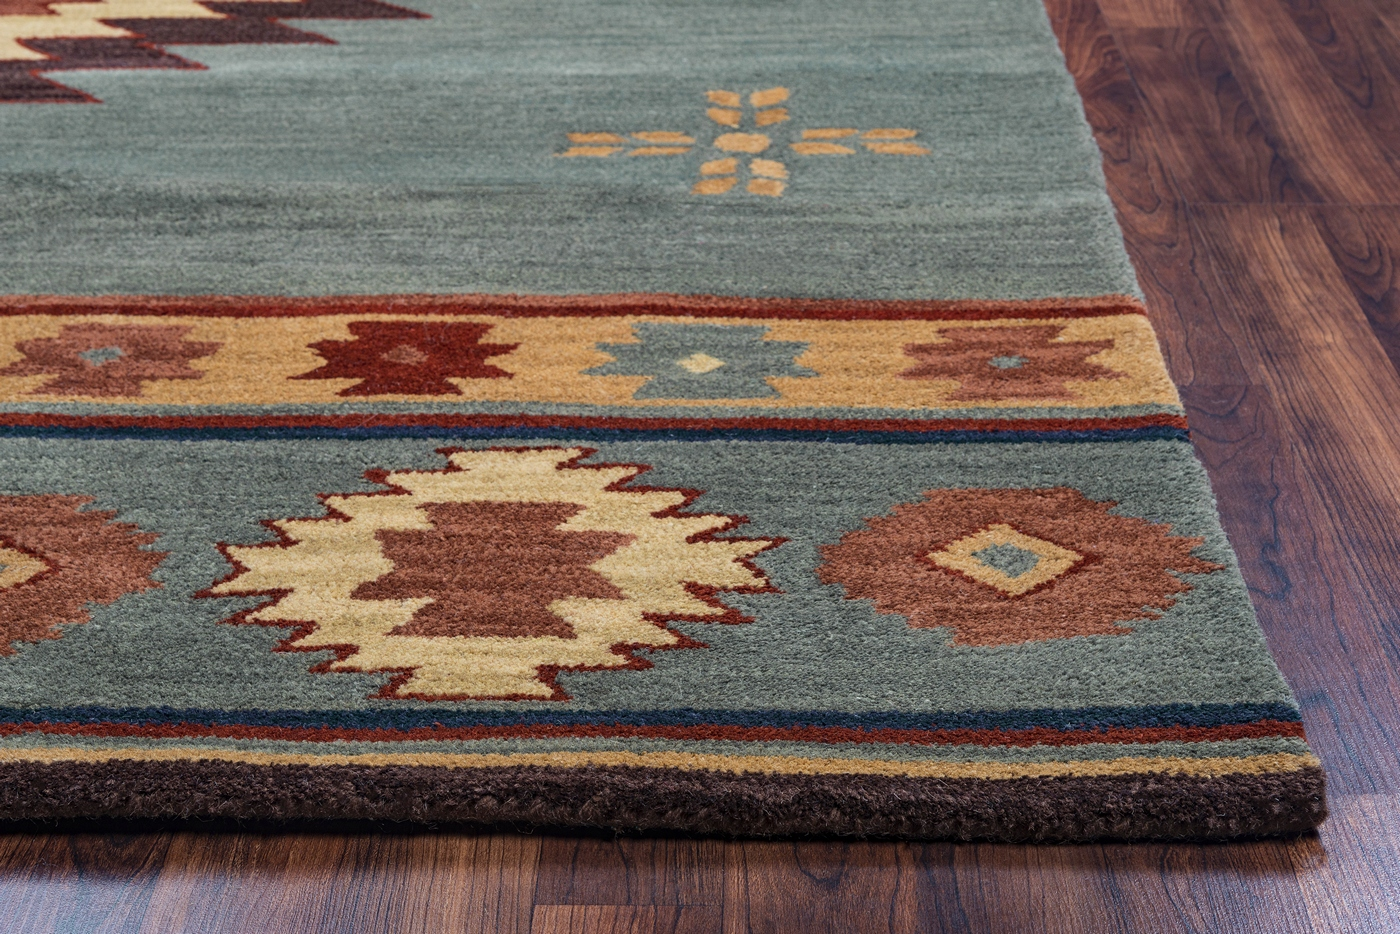 Southwest Indian Pattern Wool Area Rug In Gray Blue Rust